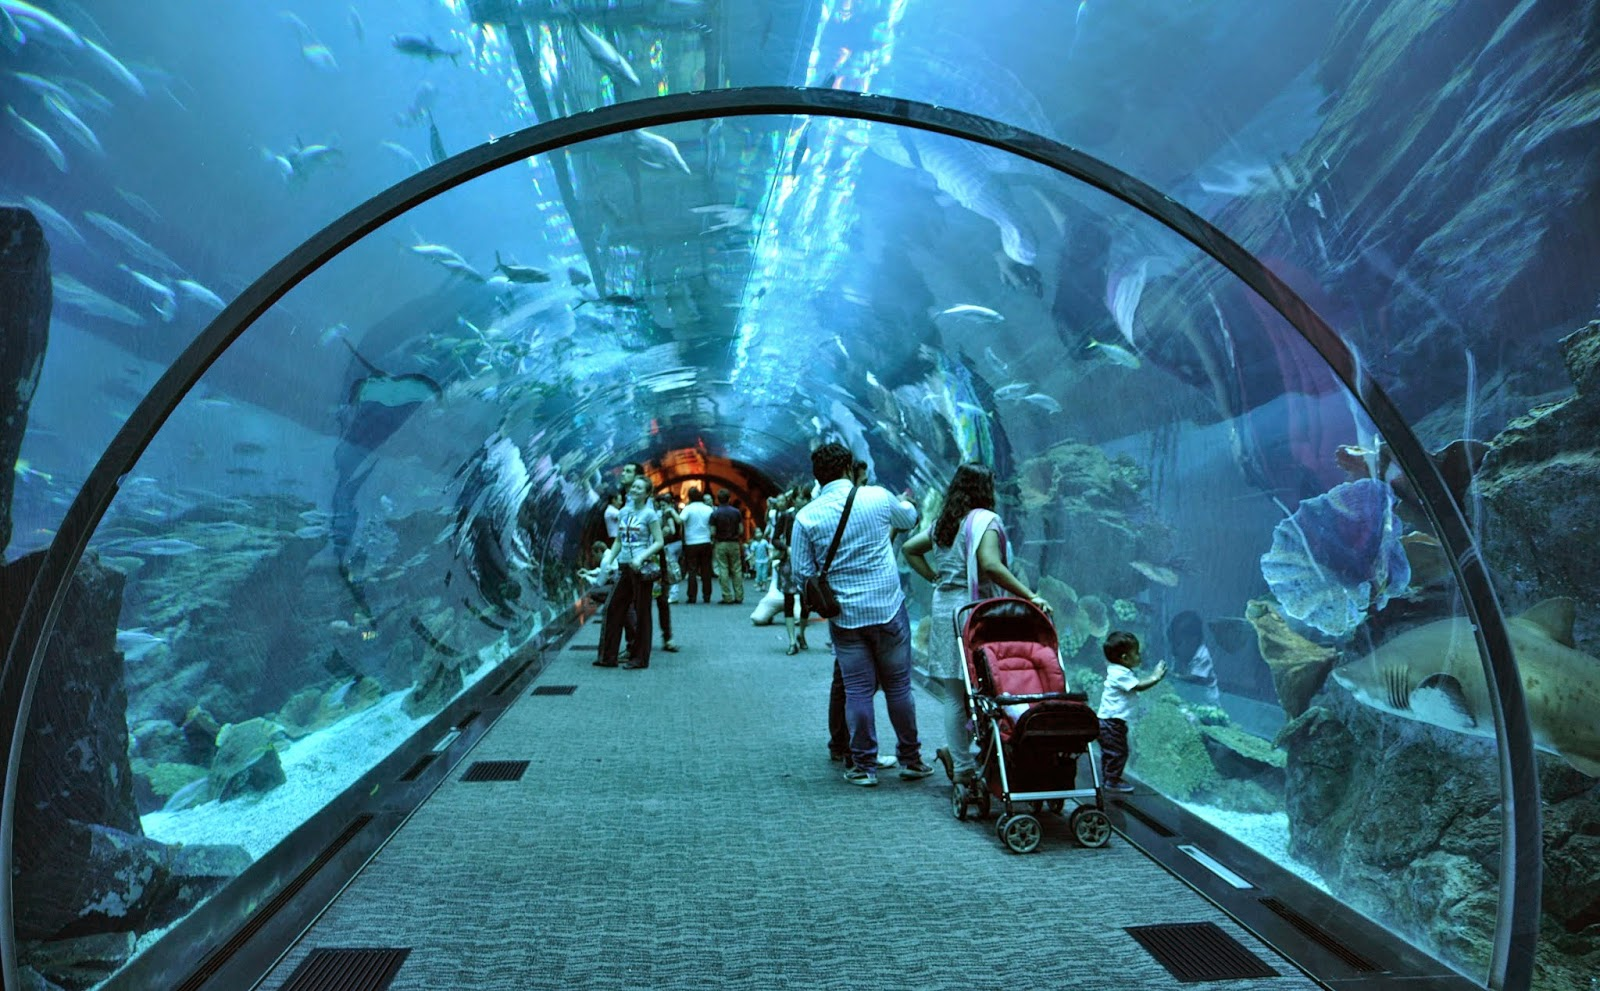 THE MOST LUXURIOUS MALL IN THE WORLD -THE DUBAI MALL; Dubai Mall Aquarium